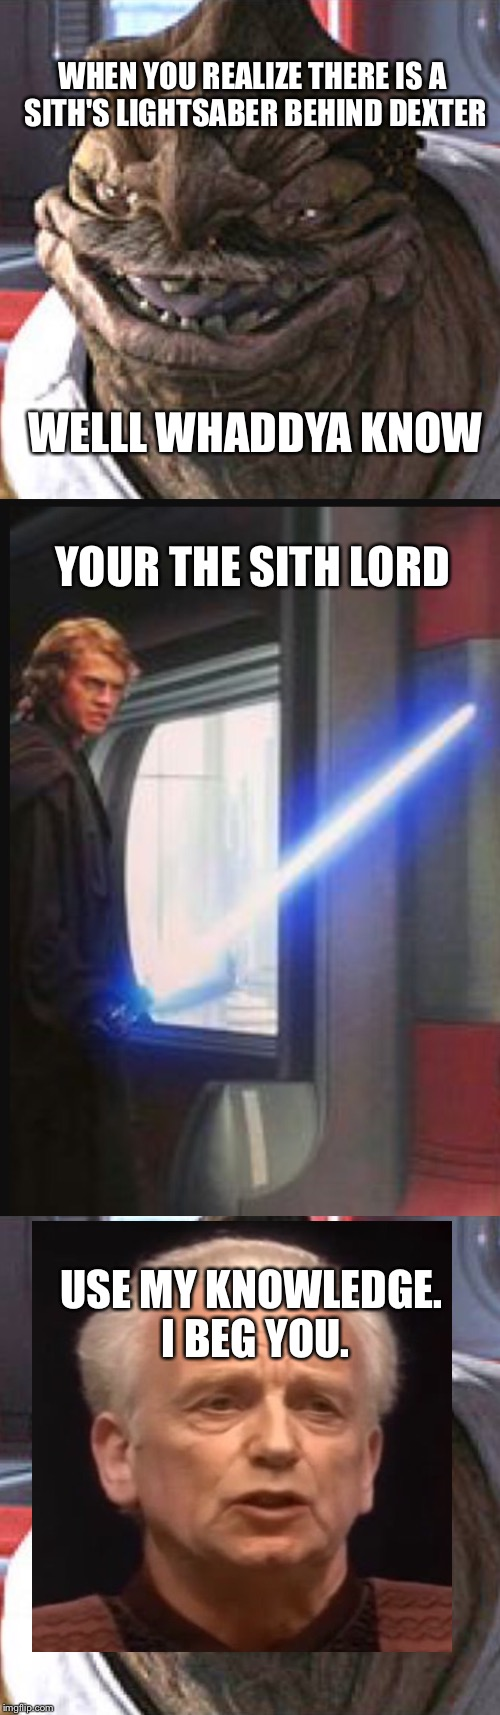 Dexter is a sixth lord | WHEN YOU REALIZE THERE IS A SITH'S LIGHTSABER BEHIND DEXTER USE MY KNOWLEDGE. I BEG YOU. WELLL WHADDYA KNOW YOUR THE SITH LORD | image tagged in sith lord,dexter,anakin skywalker,star wars,emperor palpatine,best meme | made w/ Imgflip meme maker